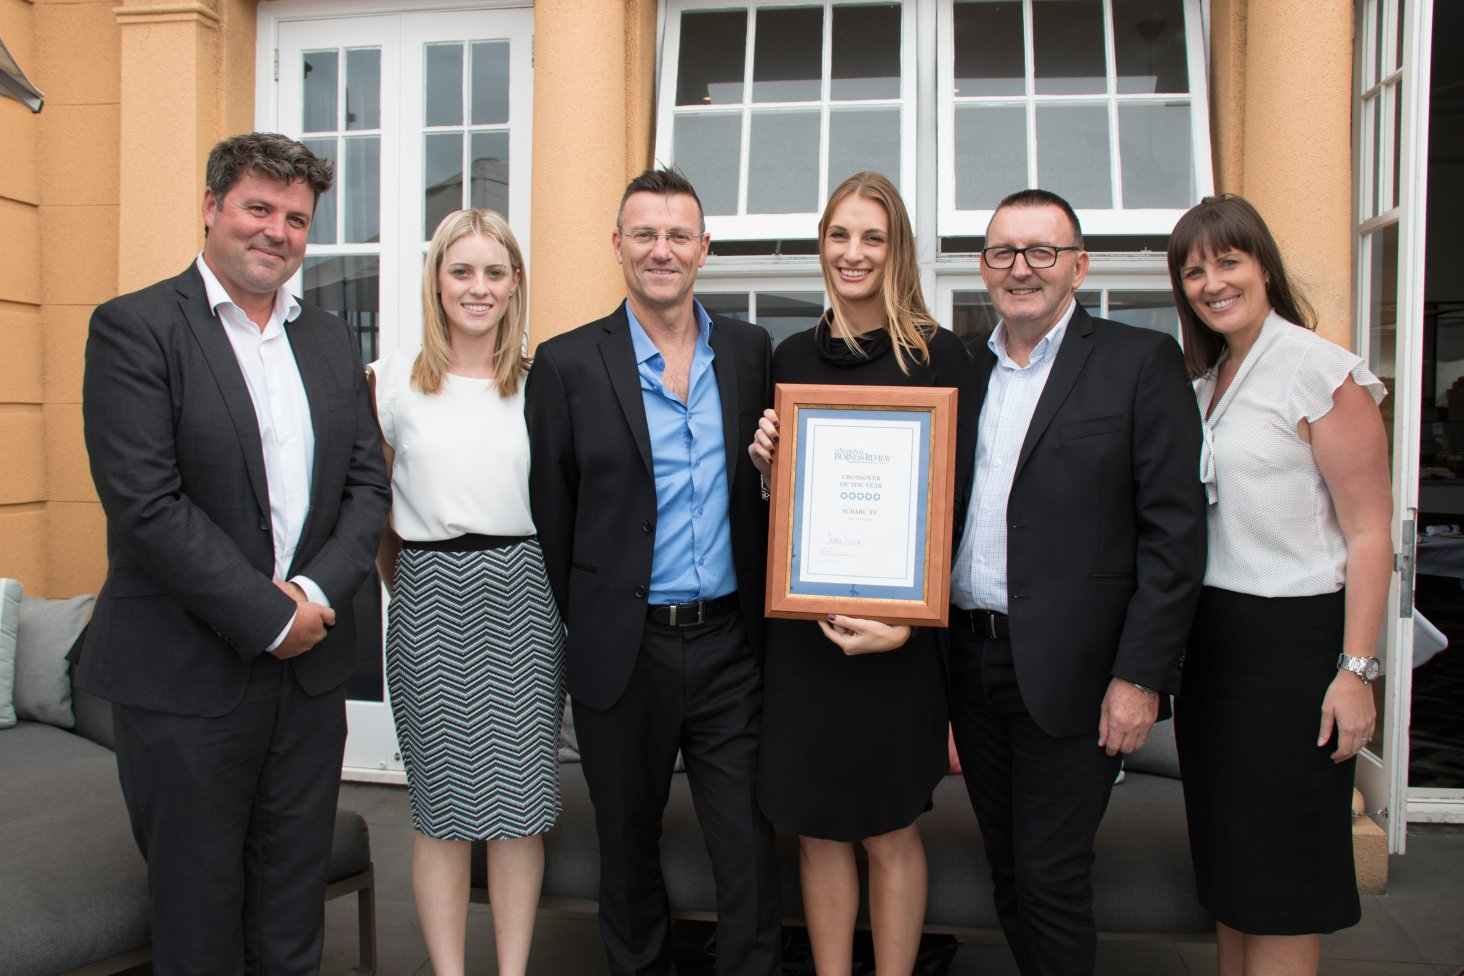 At the awards function are (from left) the NBR's Motoring Editor Cameron Officer and the Subaru team of Amie Mellor, Wayne McClennan, Ally French, Wallis Dumper and Daile Stephens.